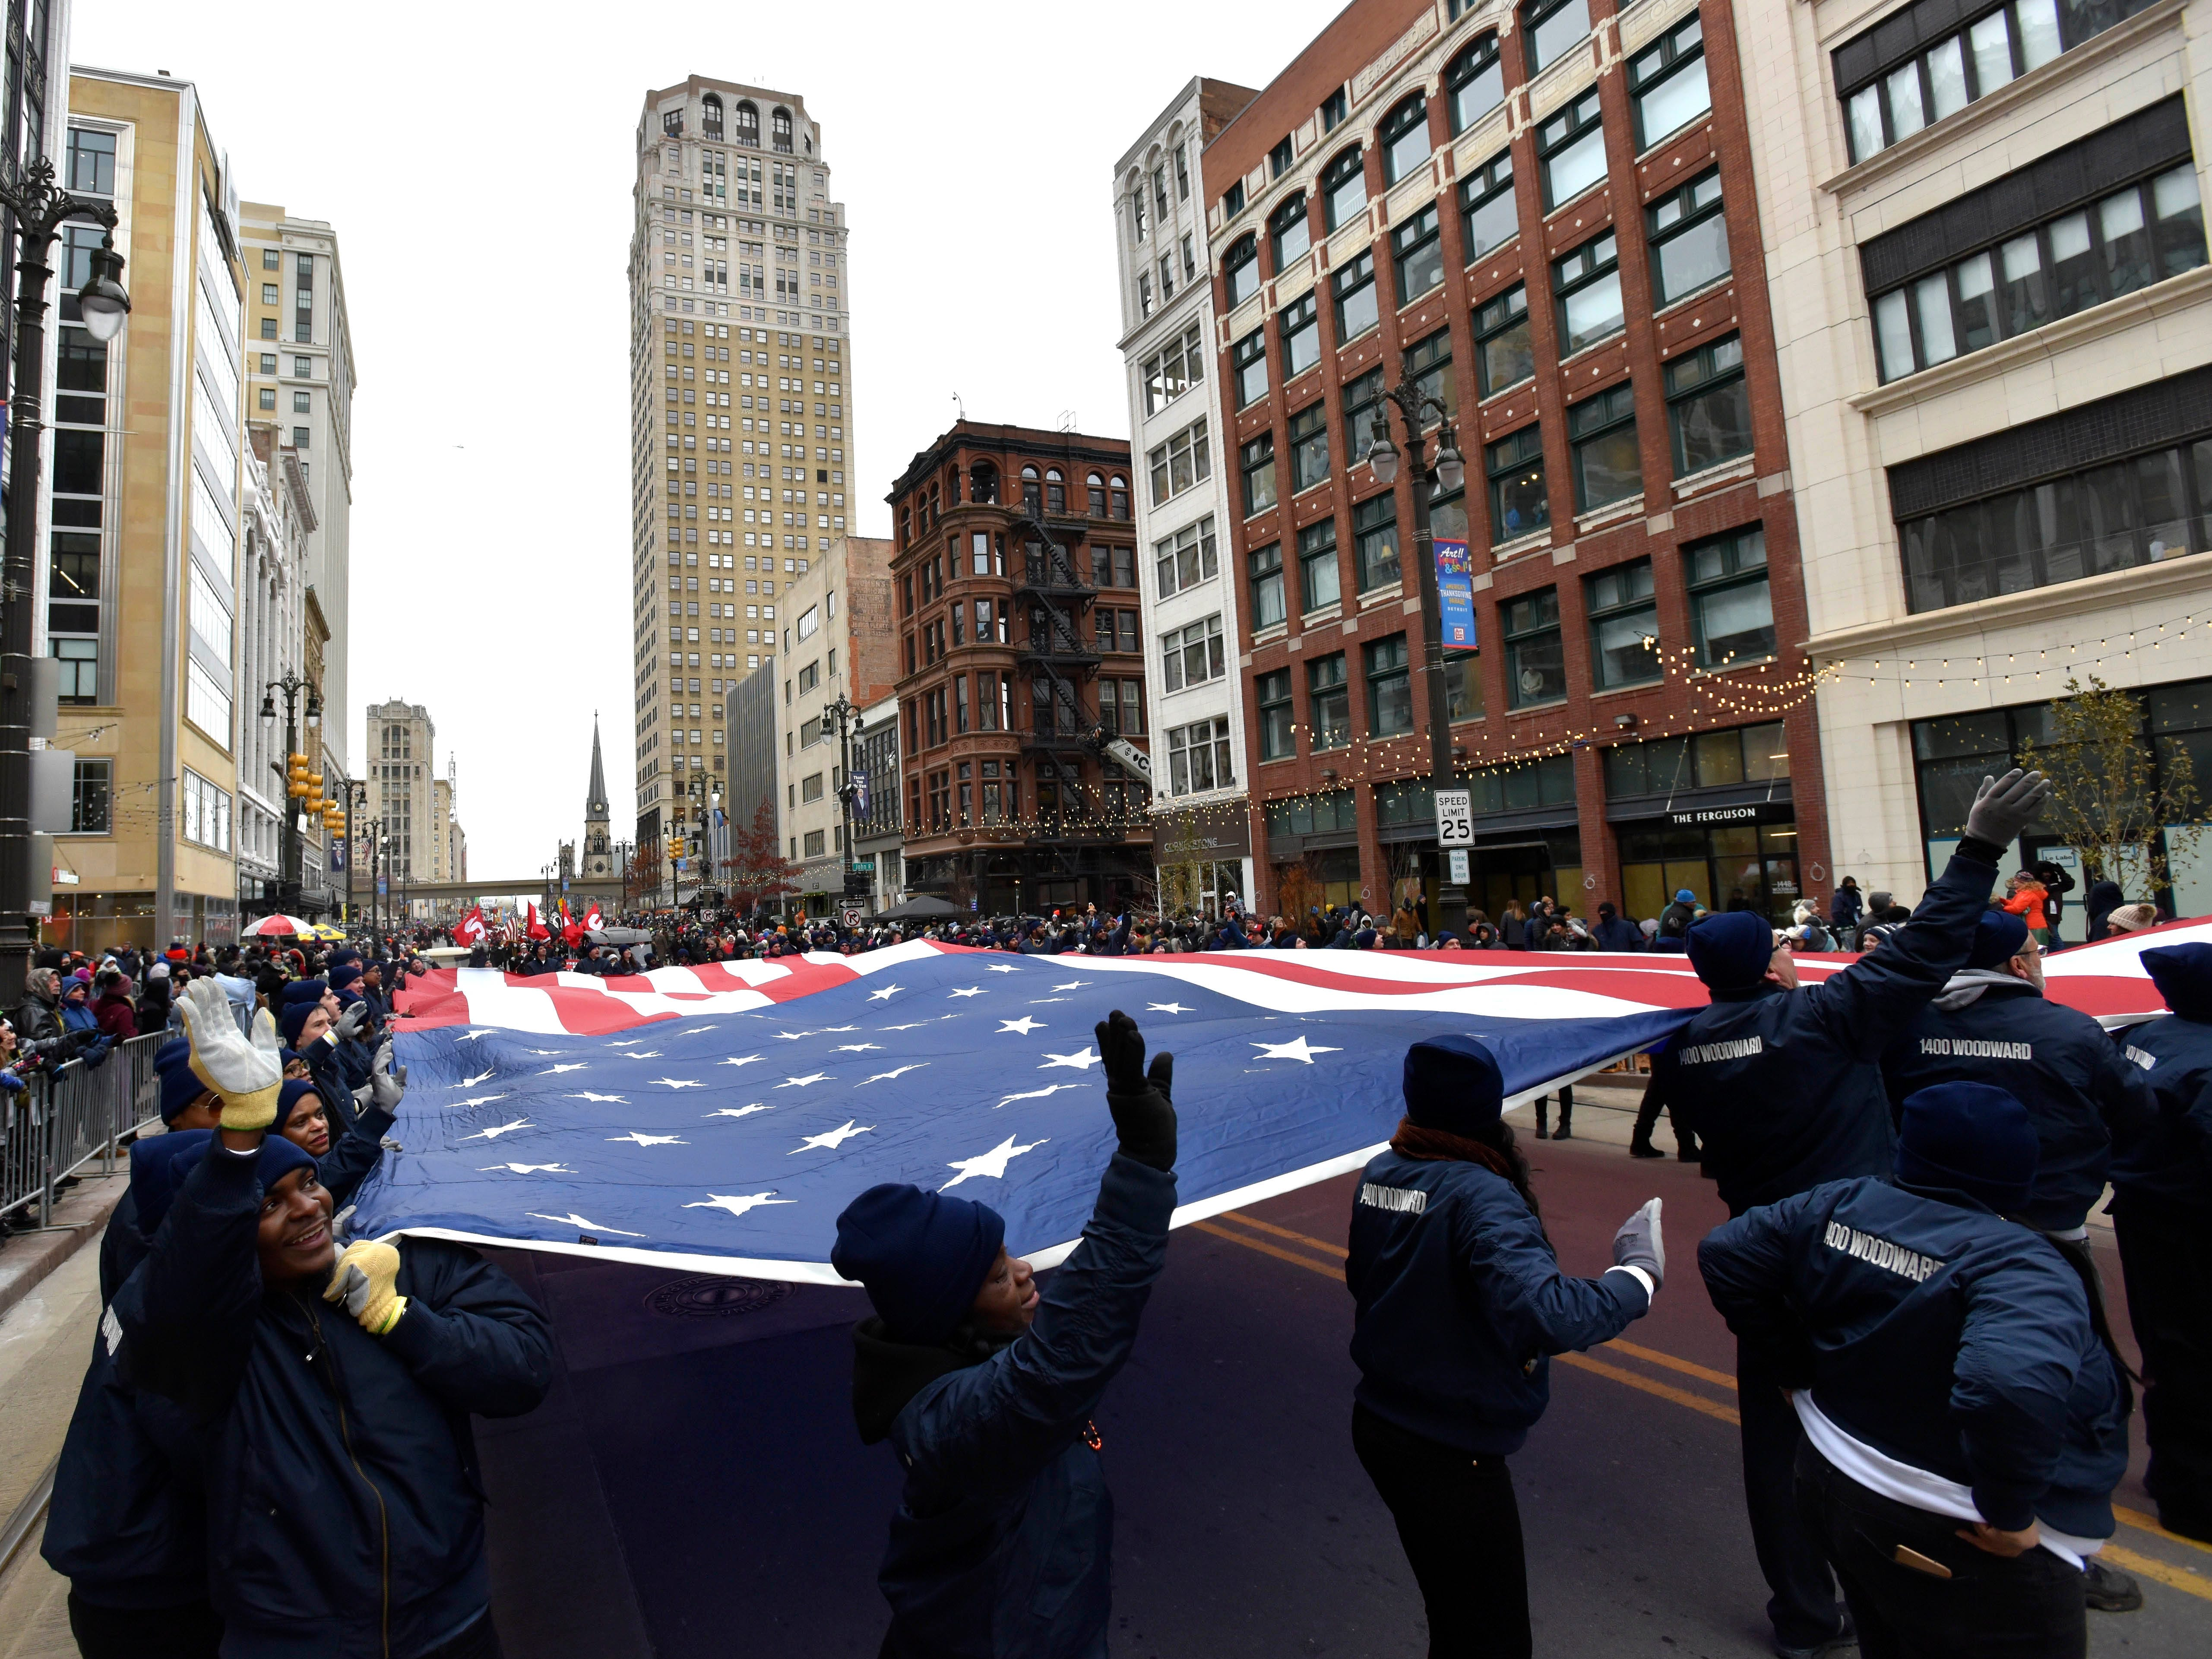 People wave with the U.S. flag from Shinola Detroit.